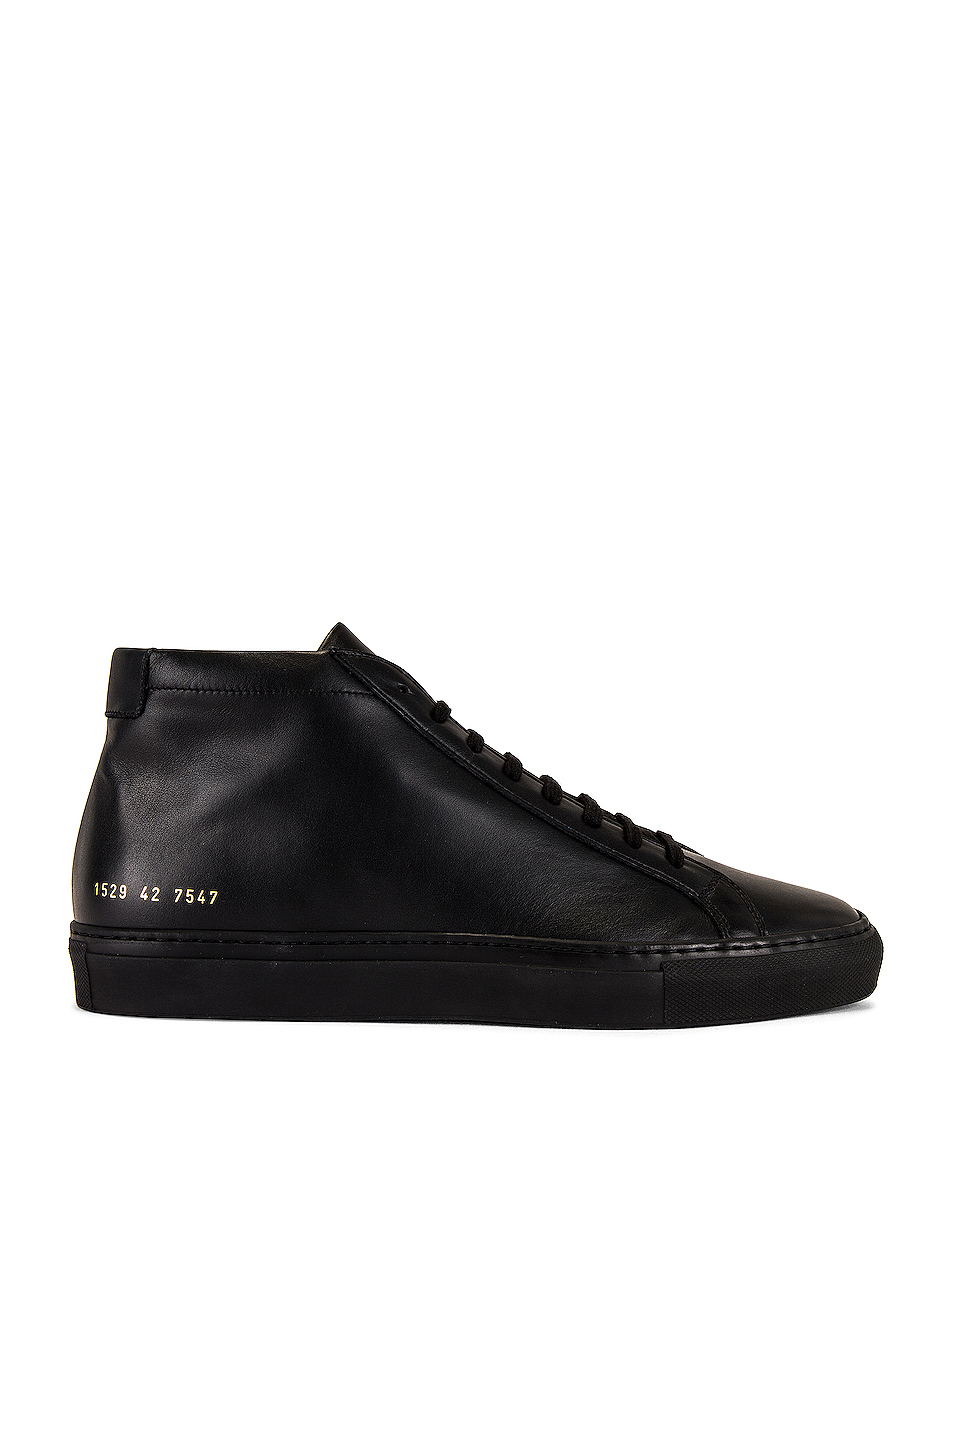 Common Projects Original Achilles Mid Tops in Black